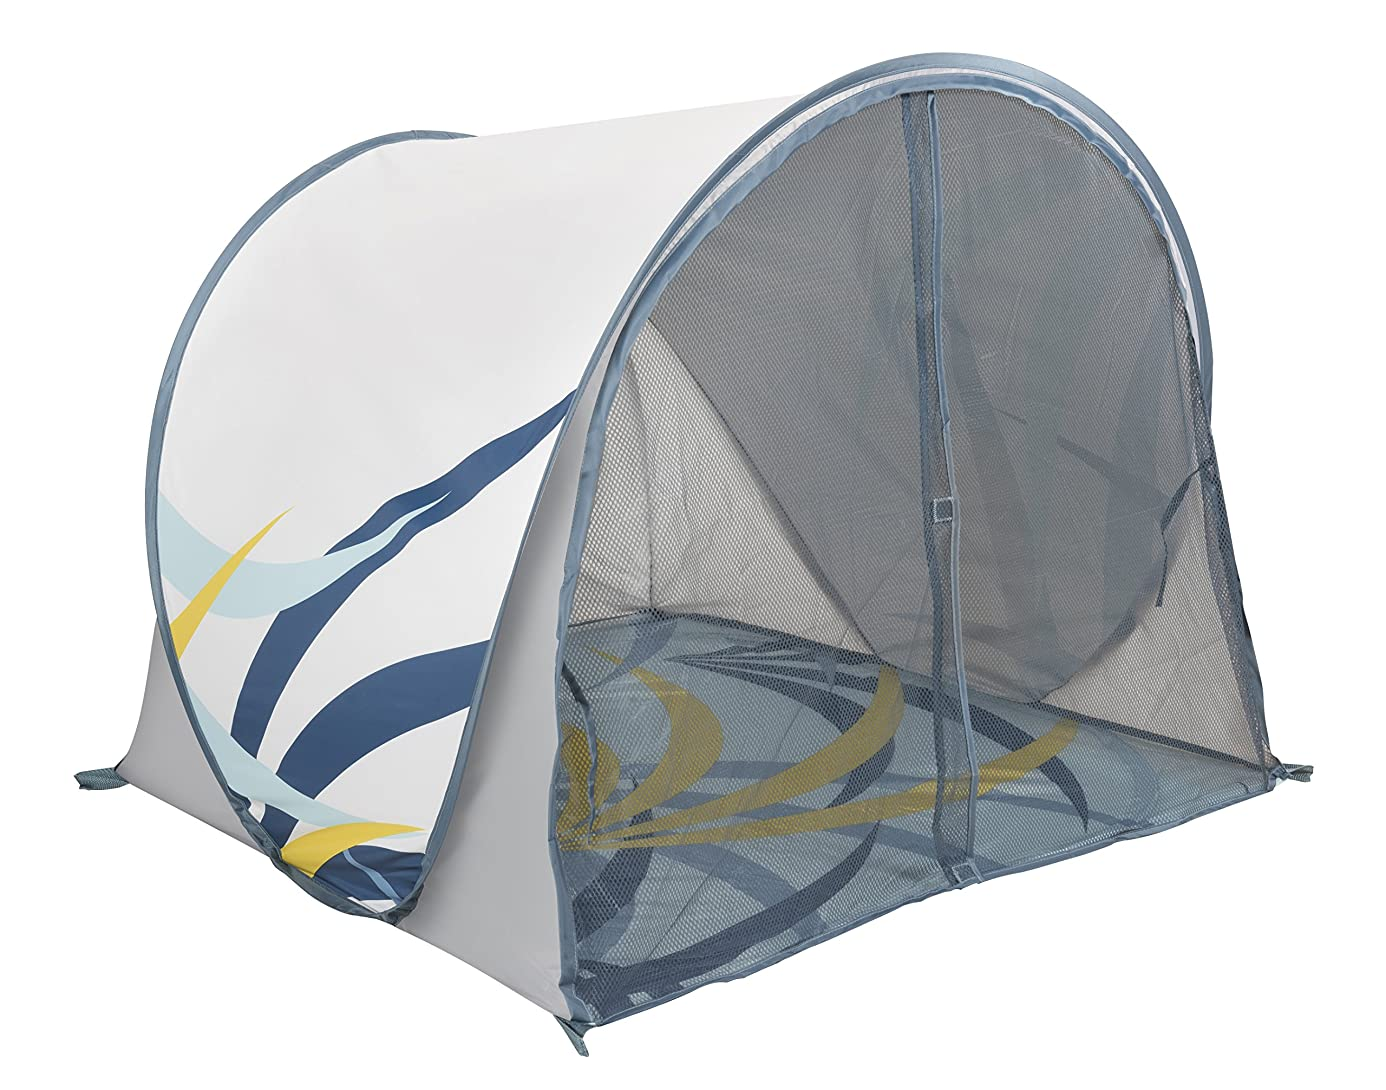 Babymoov Anti-UV Tent   UPF 50+ Pop Up Sun Shelter for Toddlers and Children, Easily Folds Into a Carrying Bag for Outdoors & Beach